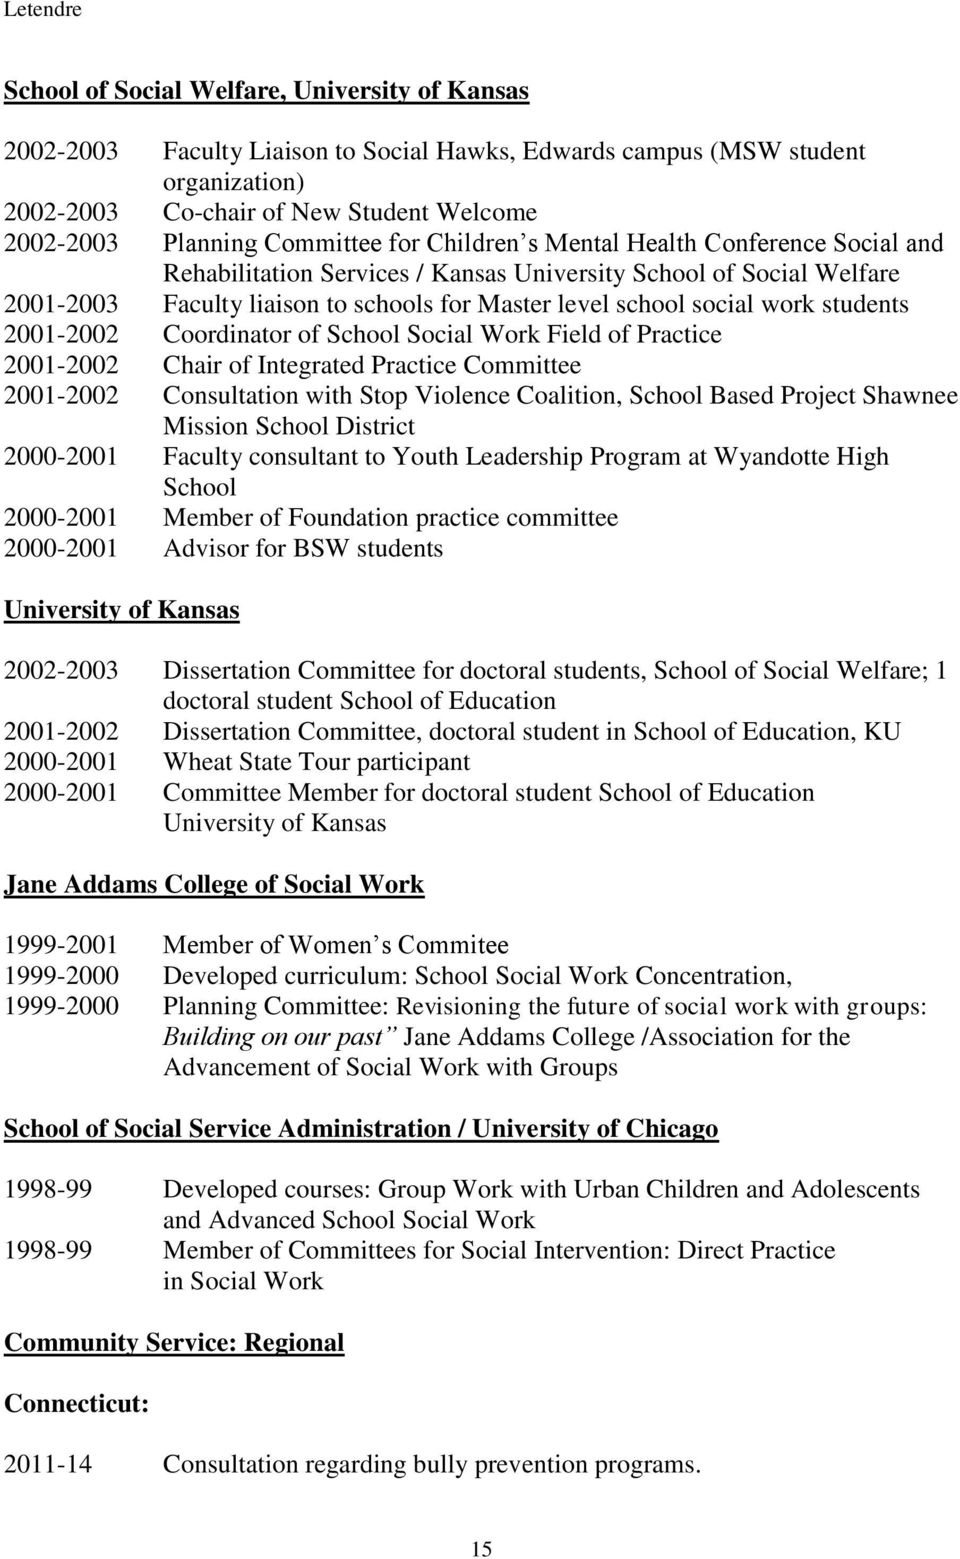 work students 2001-2002 Coordinator of School Social Work Field of Practice 2001-2002 Chair of Integrated Practice Committee 2001-2002 Consultation with Stop Violence Coalition, School Based Project